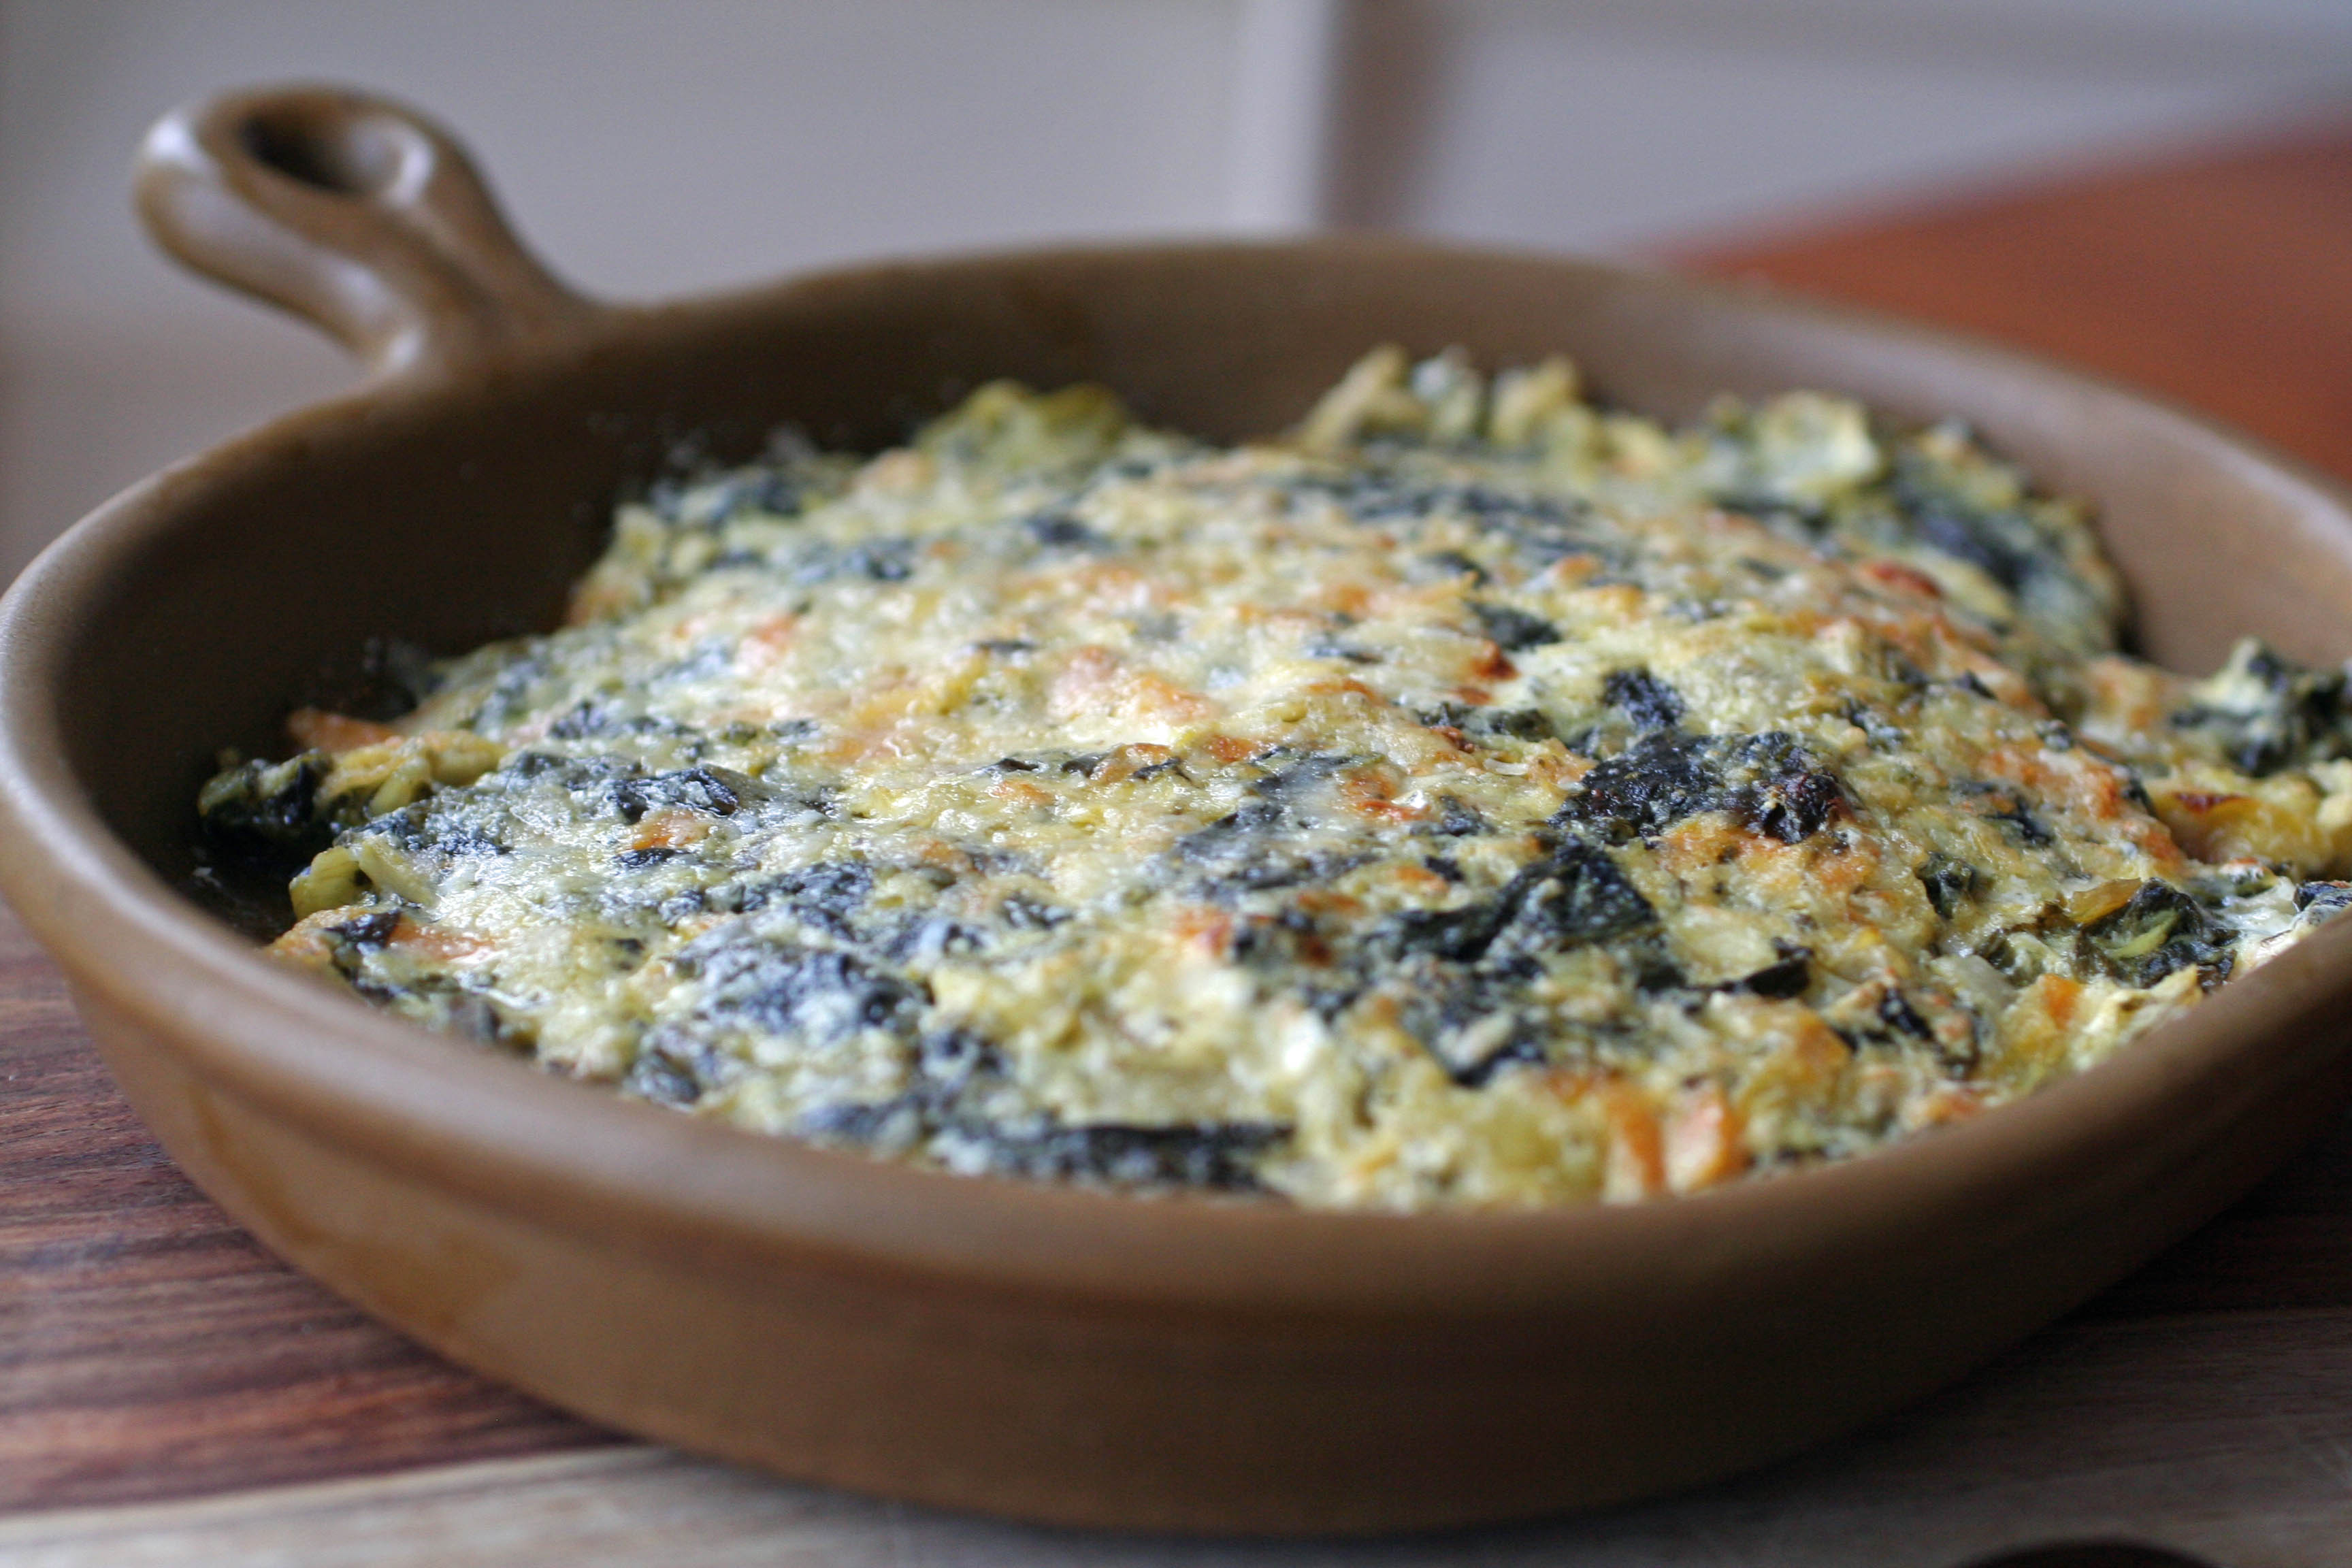 Emerald City Baked Artichoke and Kale Dip